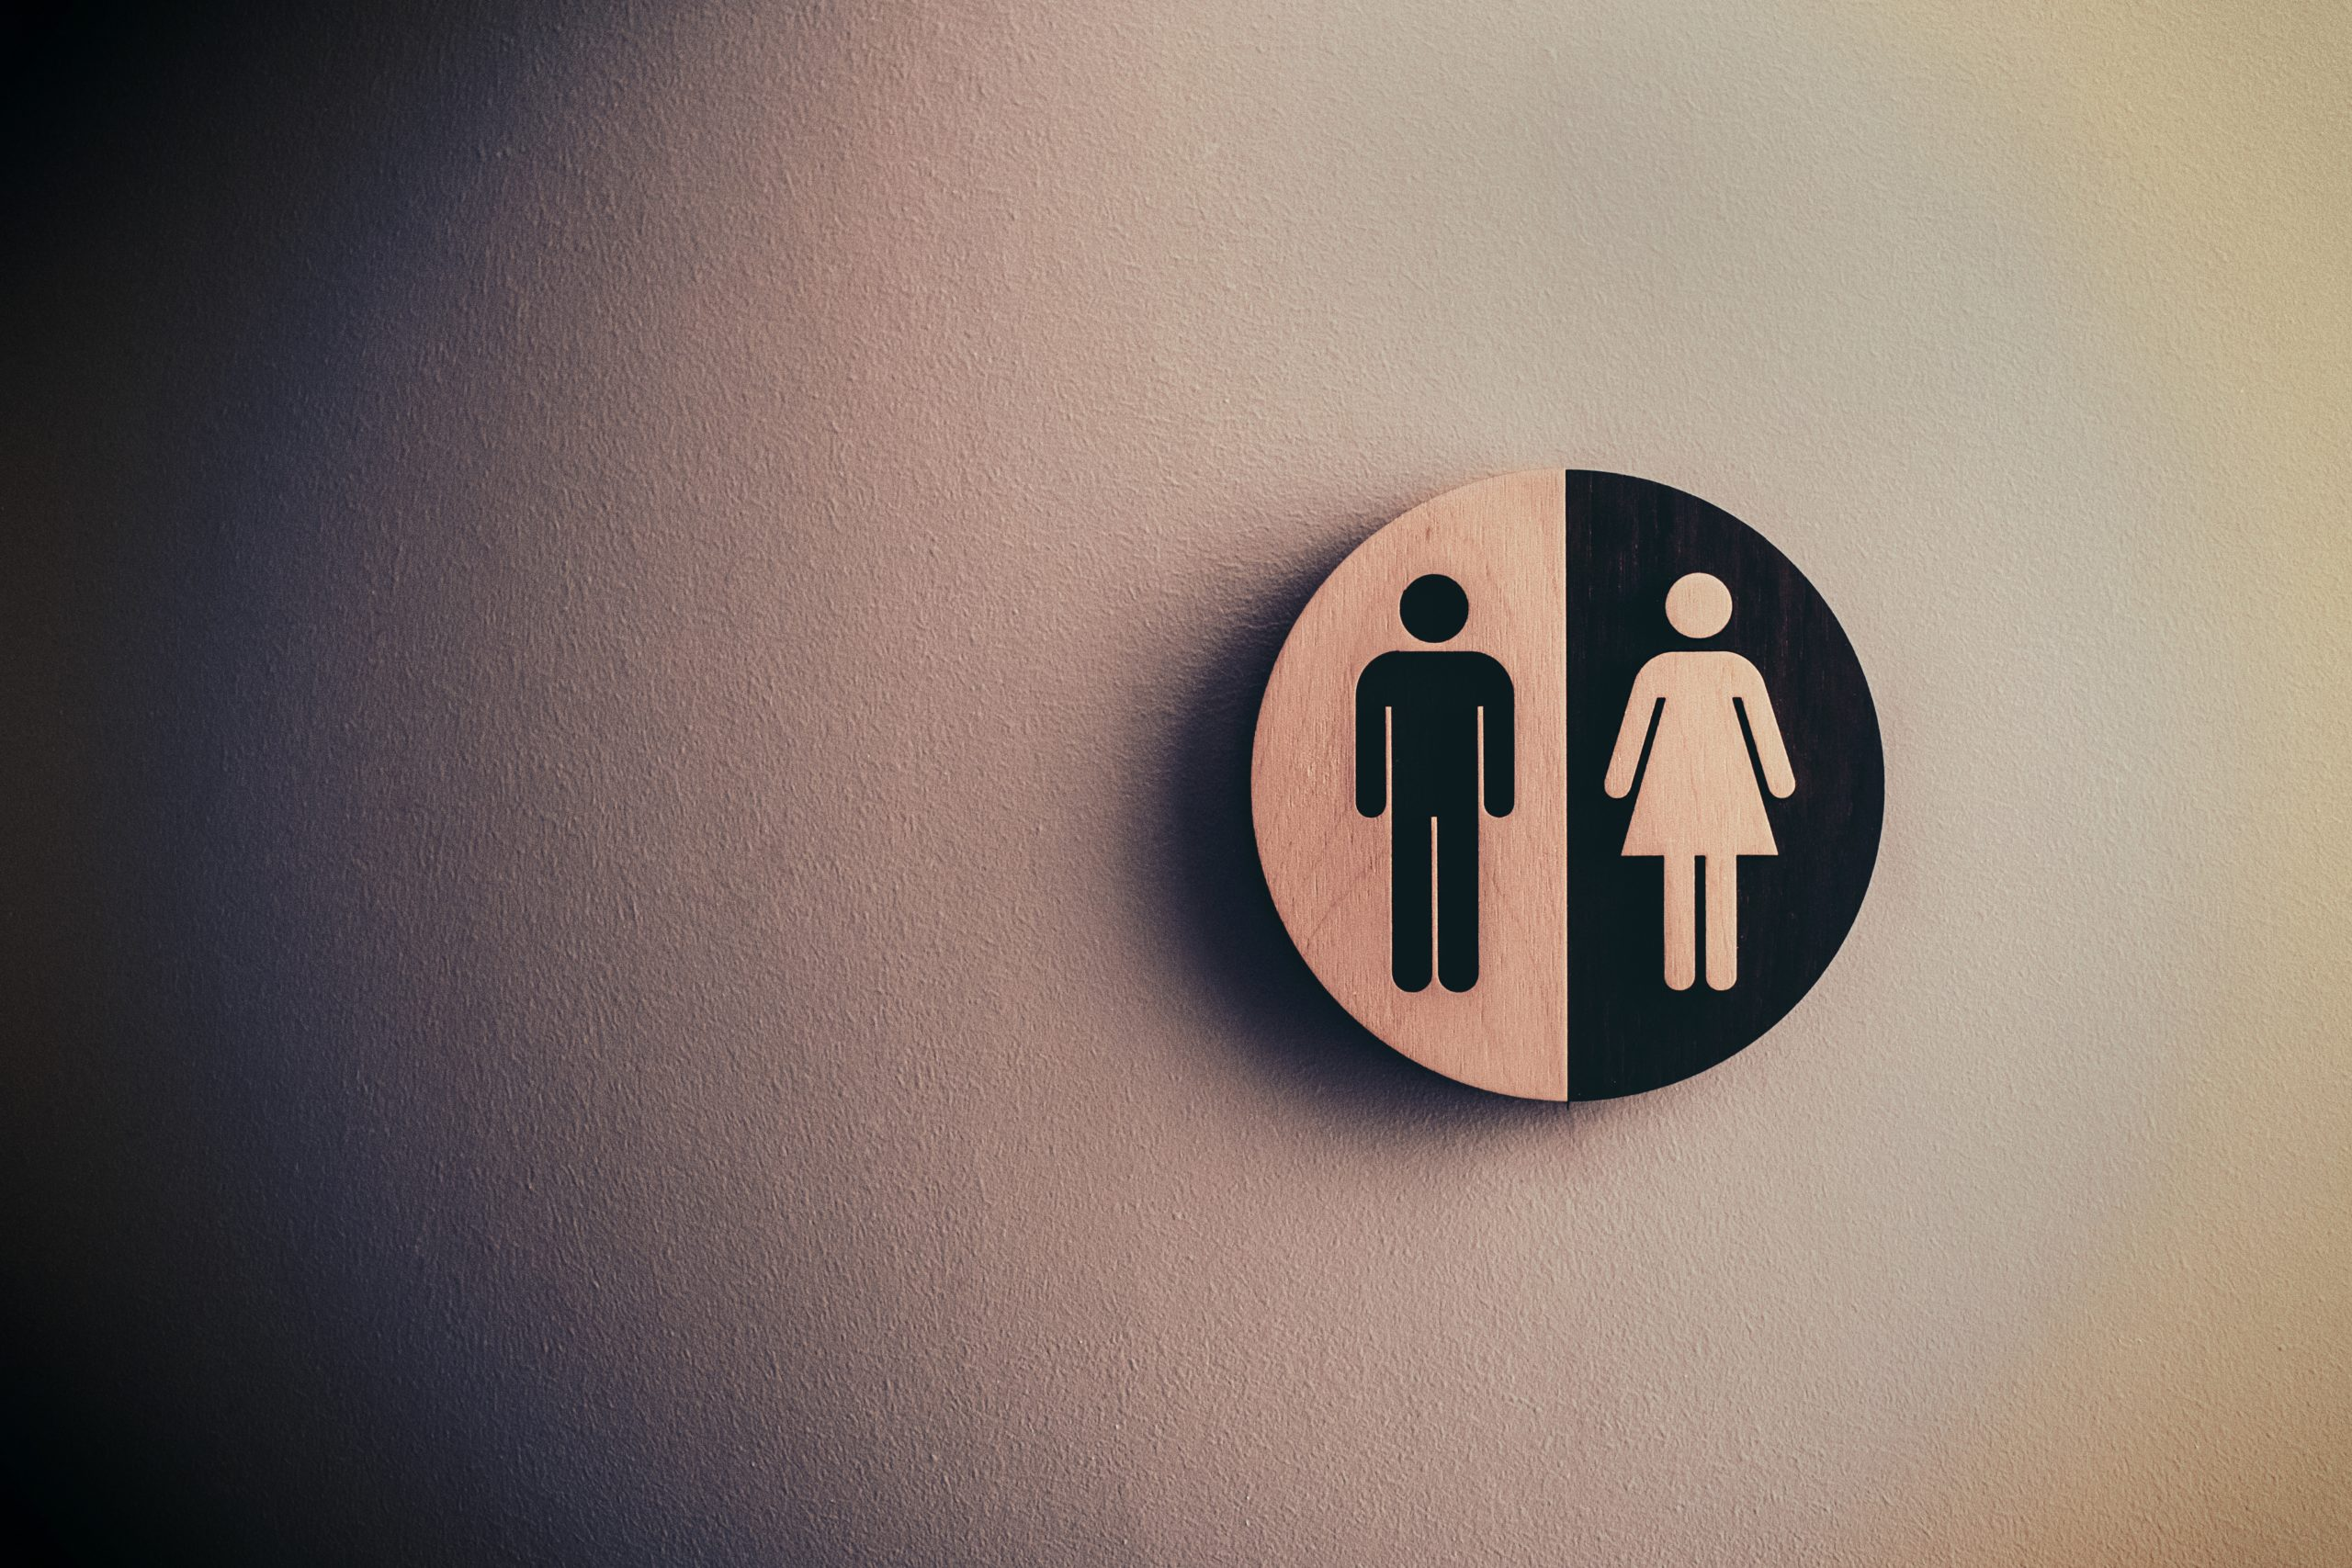 male-and-female-signage-on-wall-1722196